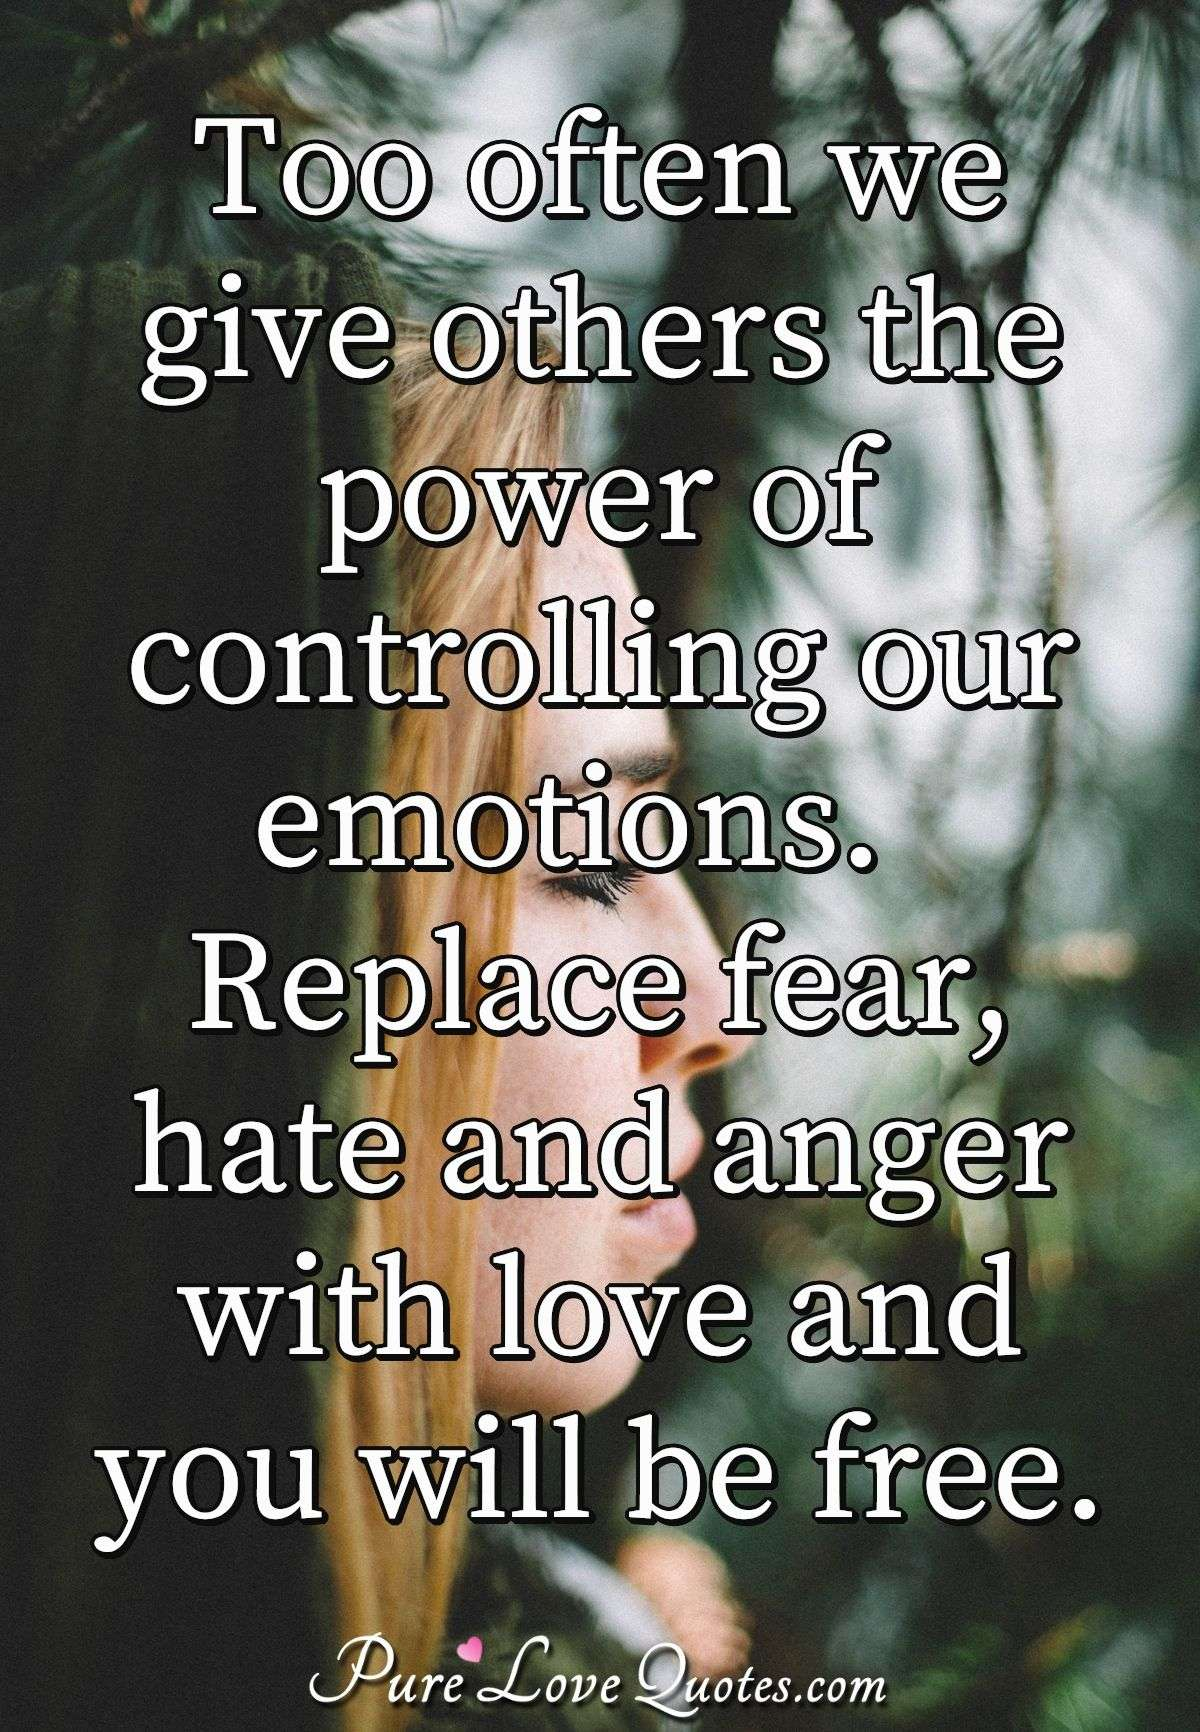 Too often we give others the power of controlling our emotions.  Replace fear, hate and anger with love and you will be free. - PureLoveQuotes.com